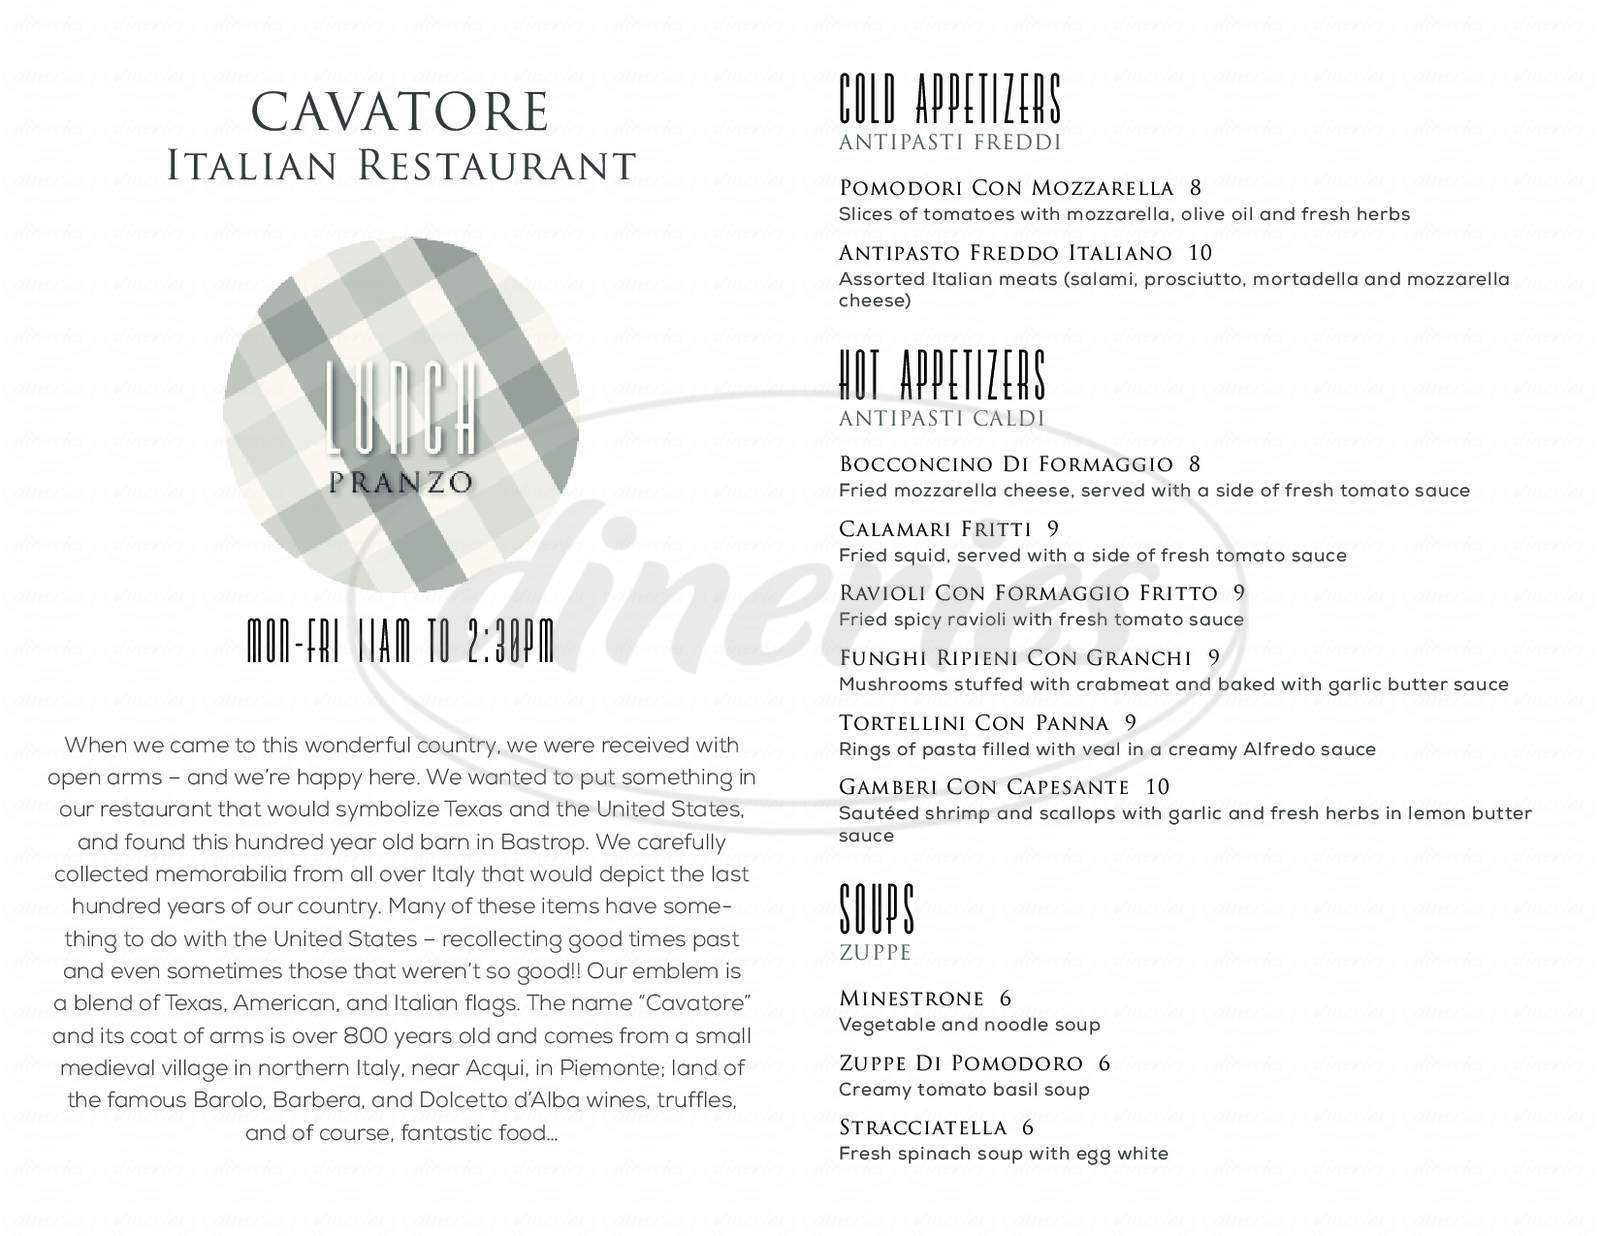 menu for Cavatore Italian Restaurant